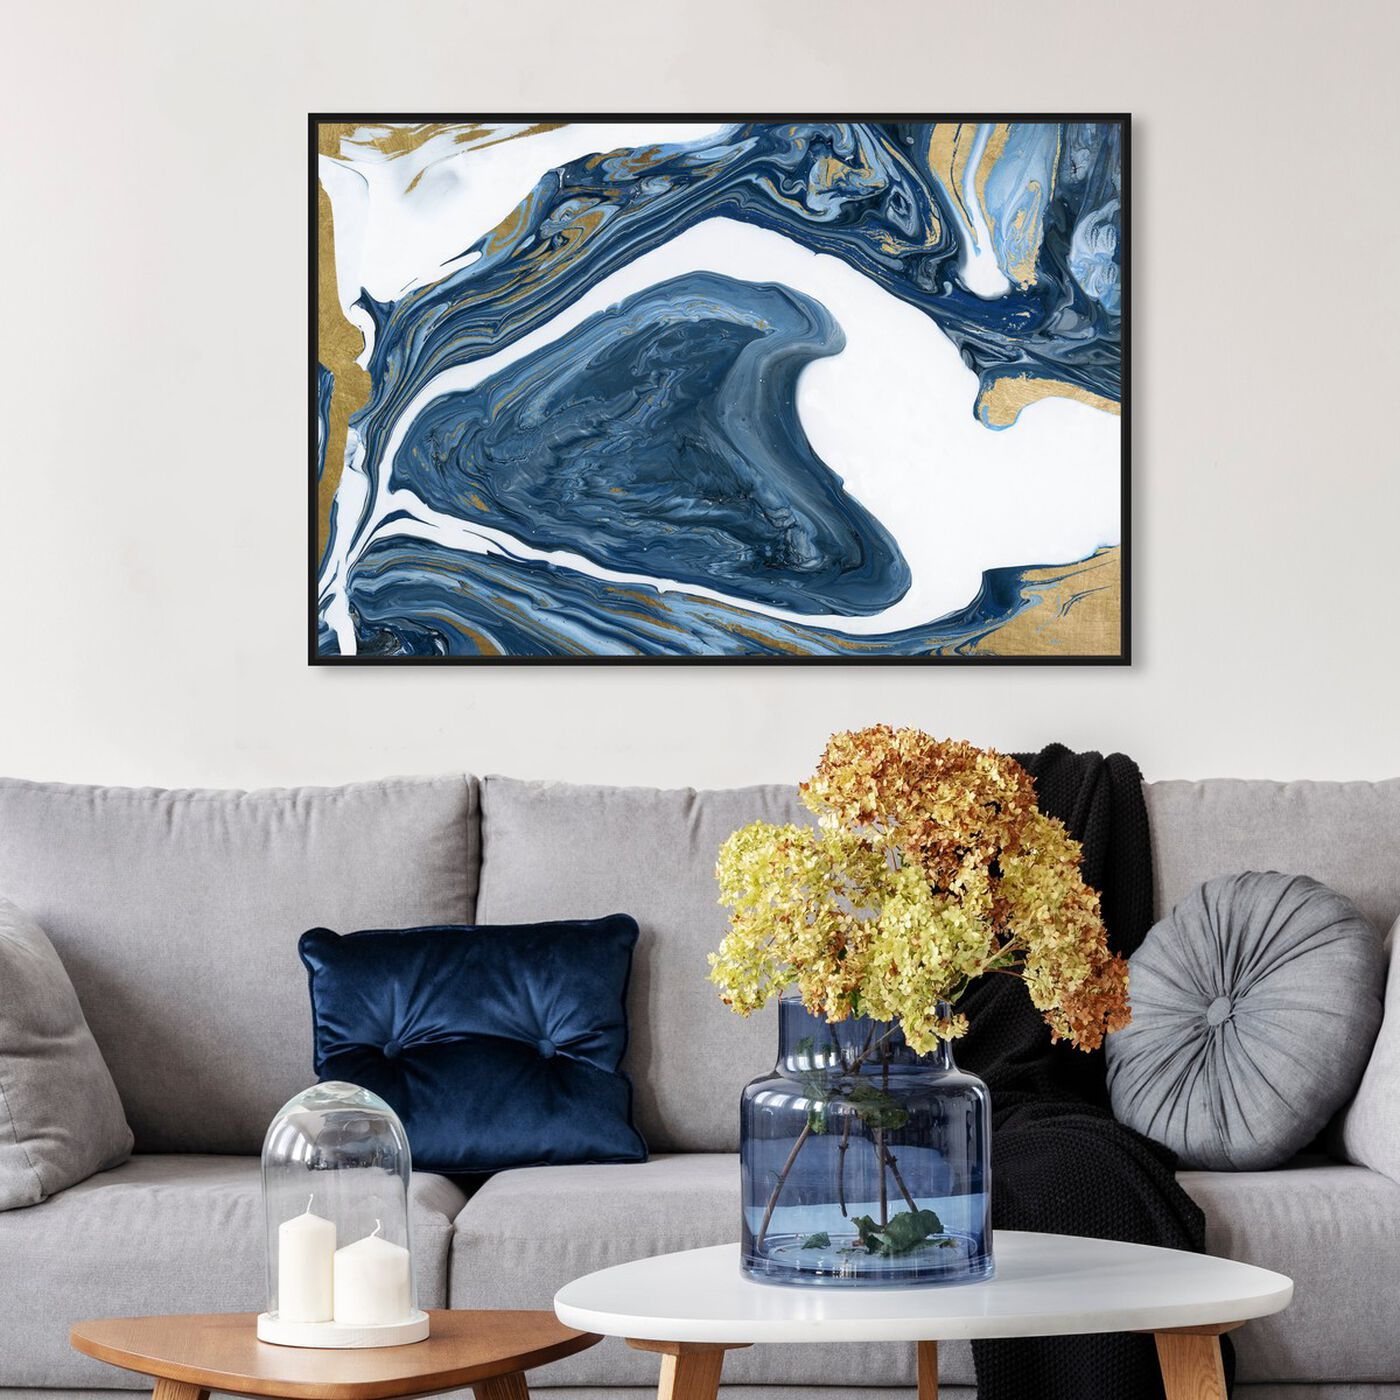 Hanging view of Deep Agate featuring abstract and crystals art.